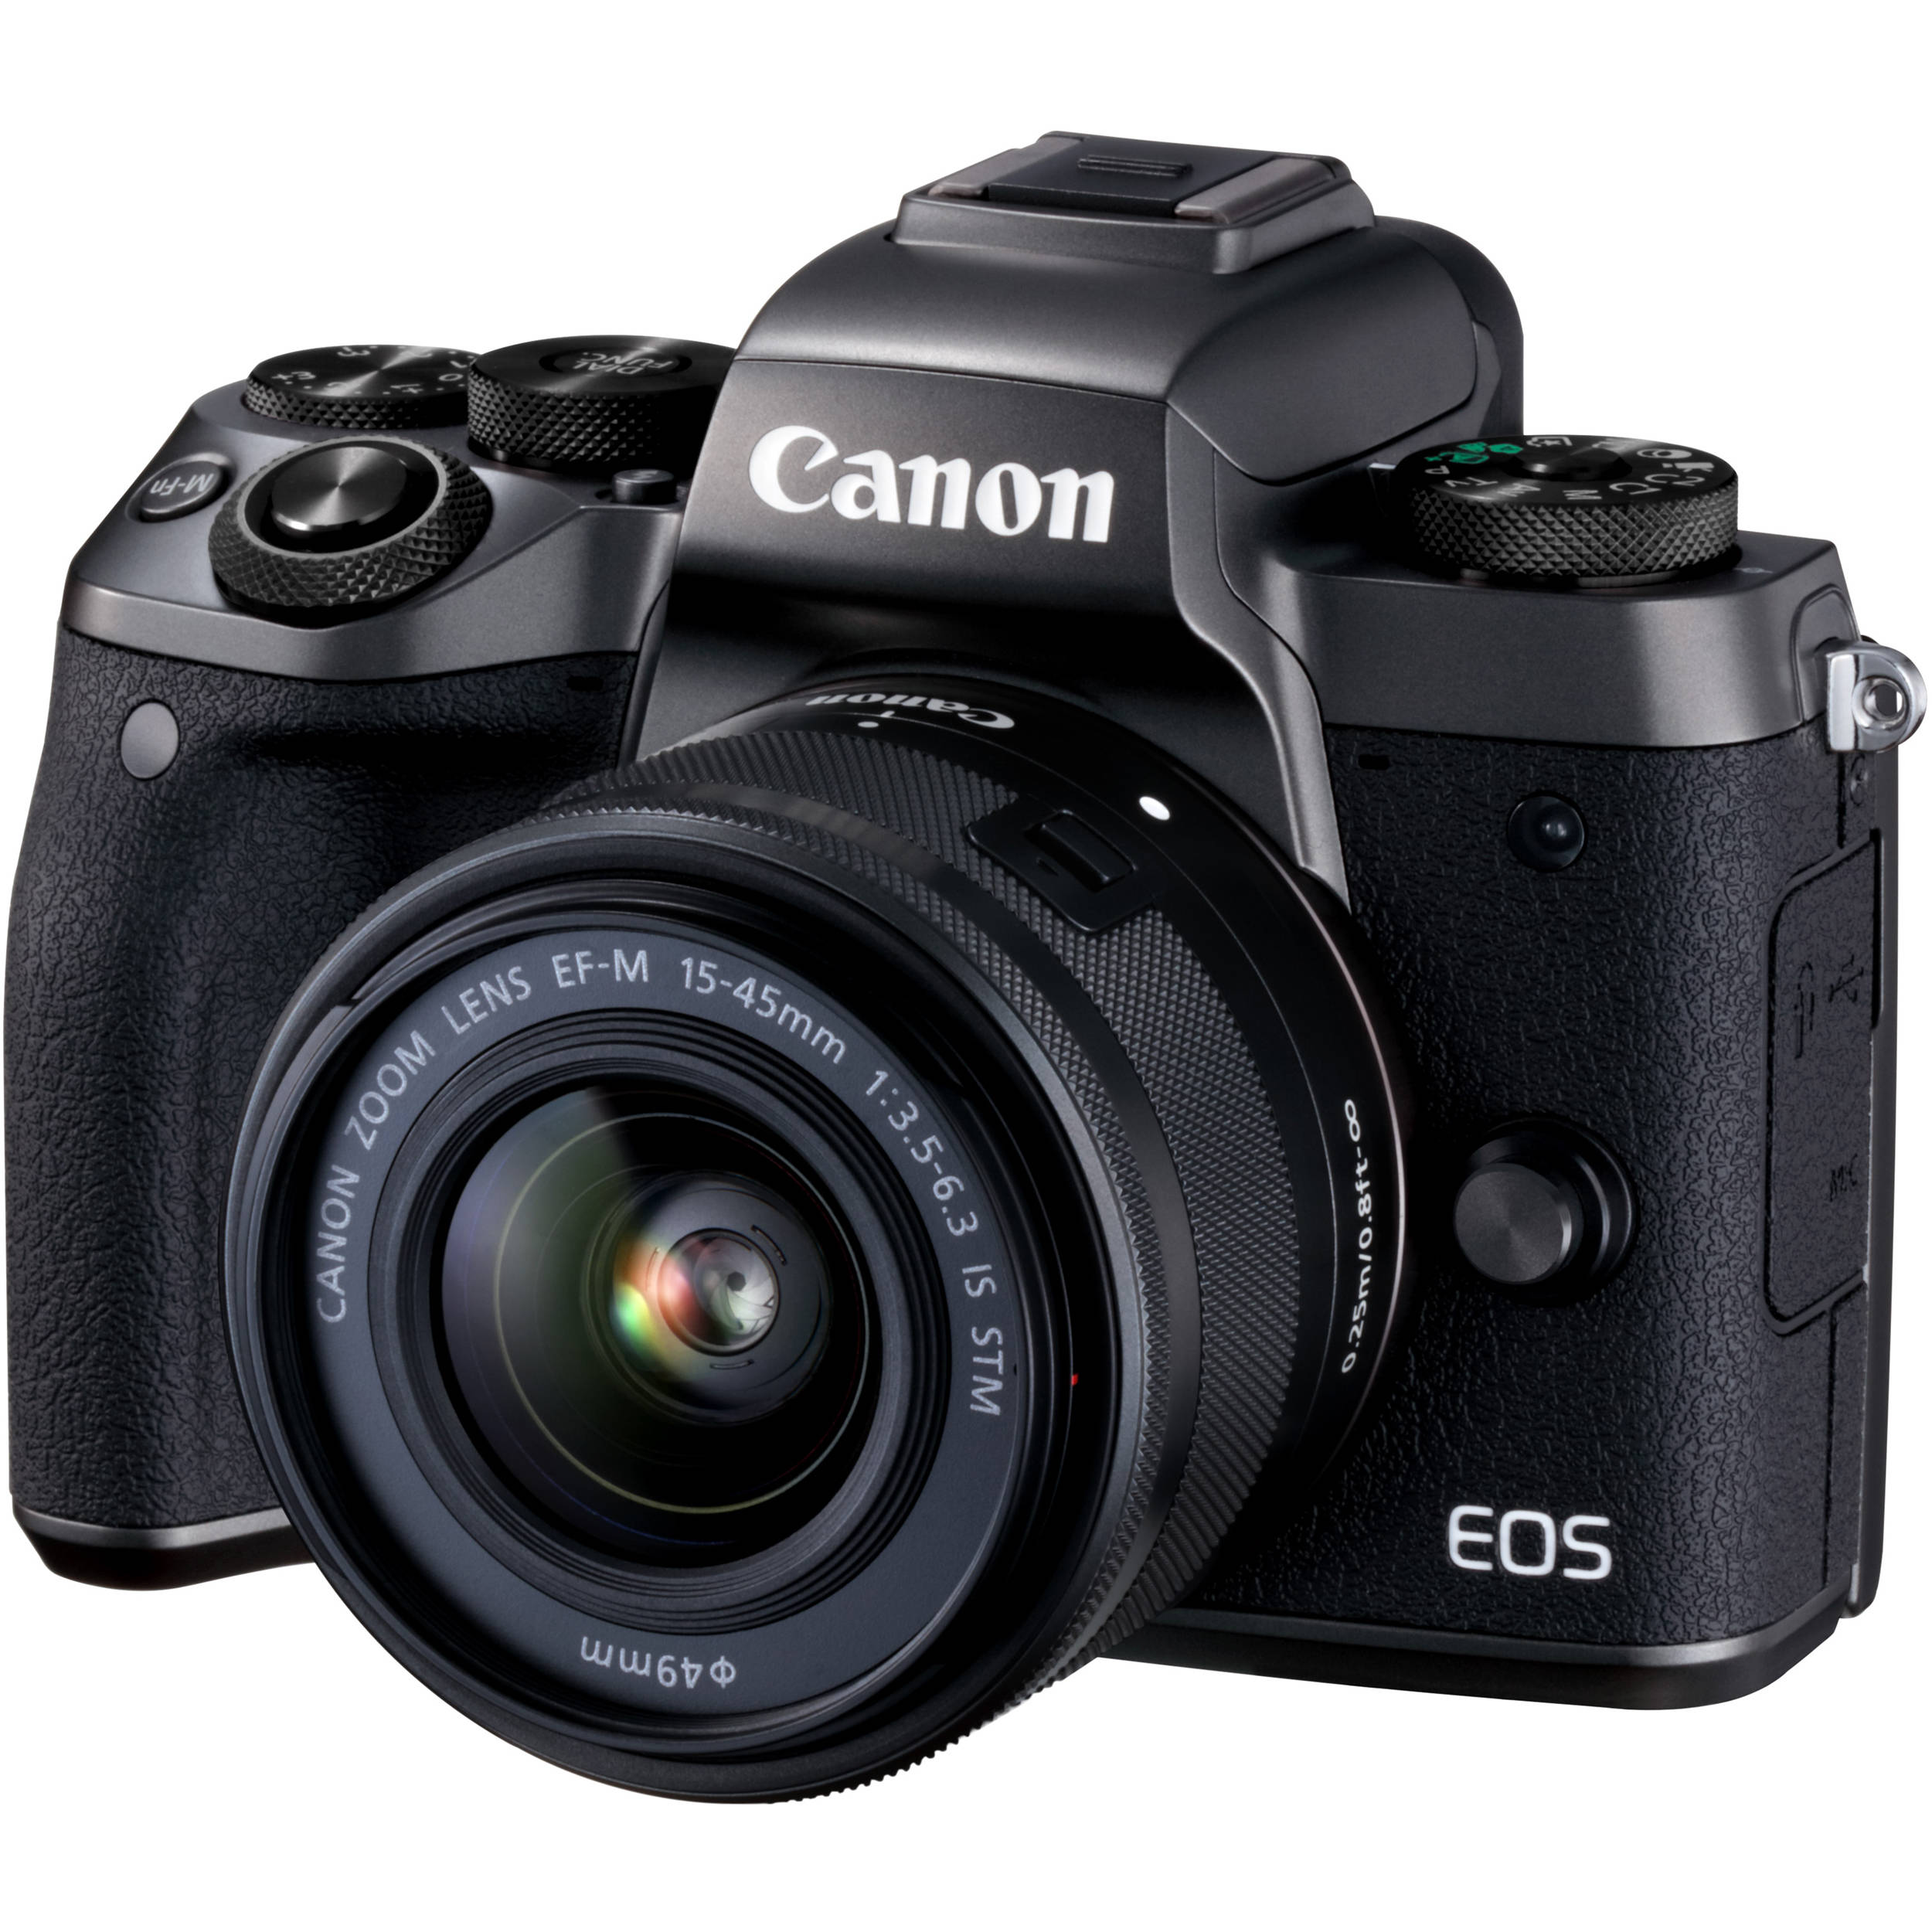 Canon Eos M5 Mirrorless Digital Camera With 15 45mm 1279c011aa Lensa 22mm Stm For M Lens